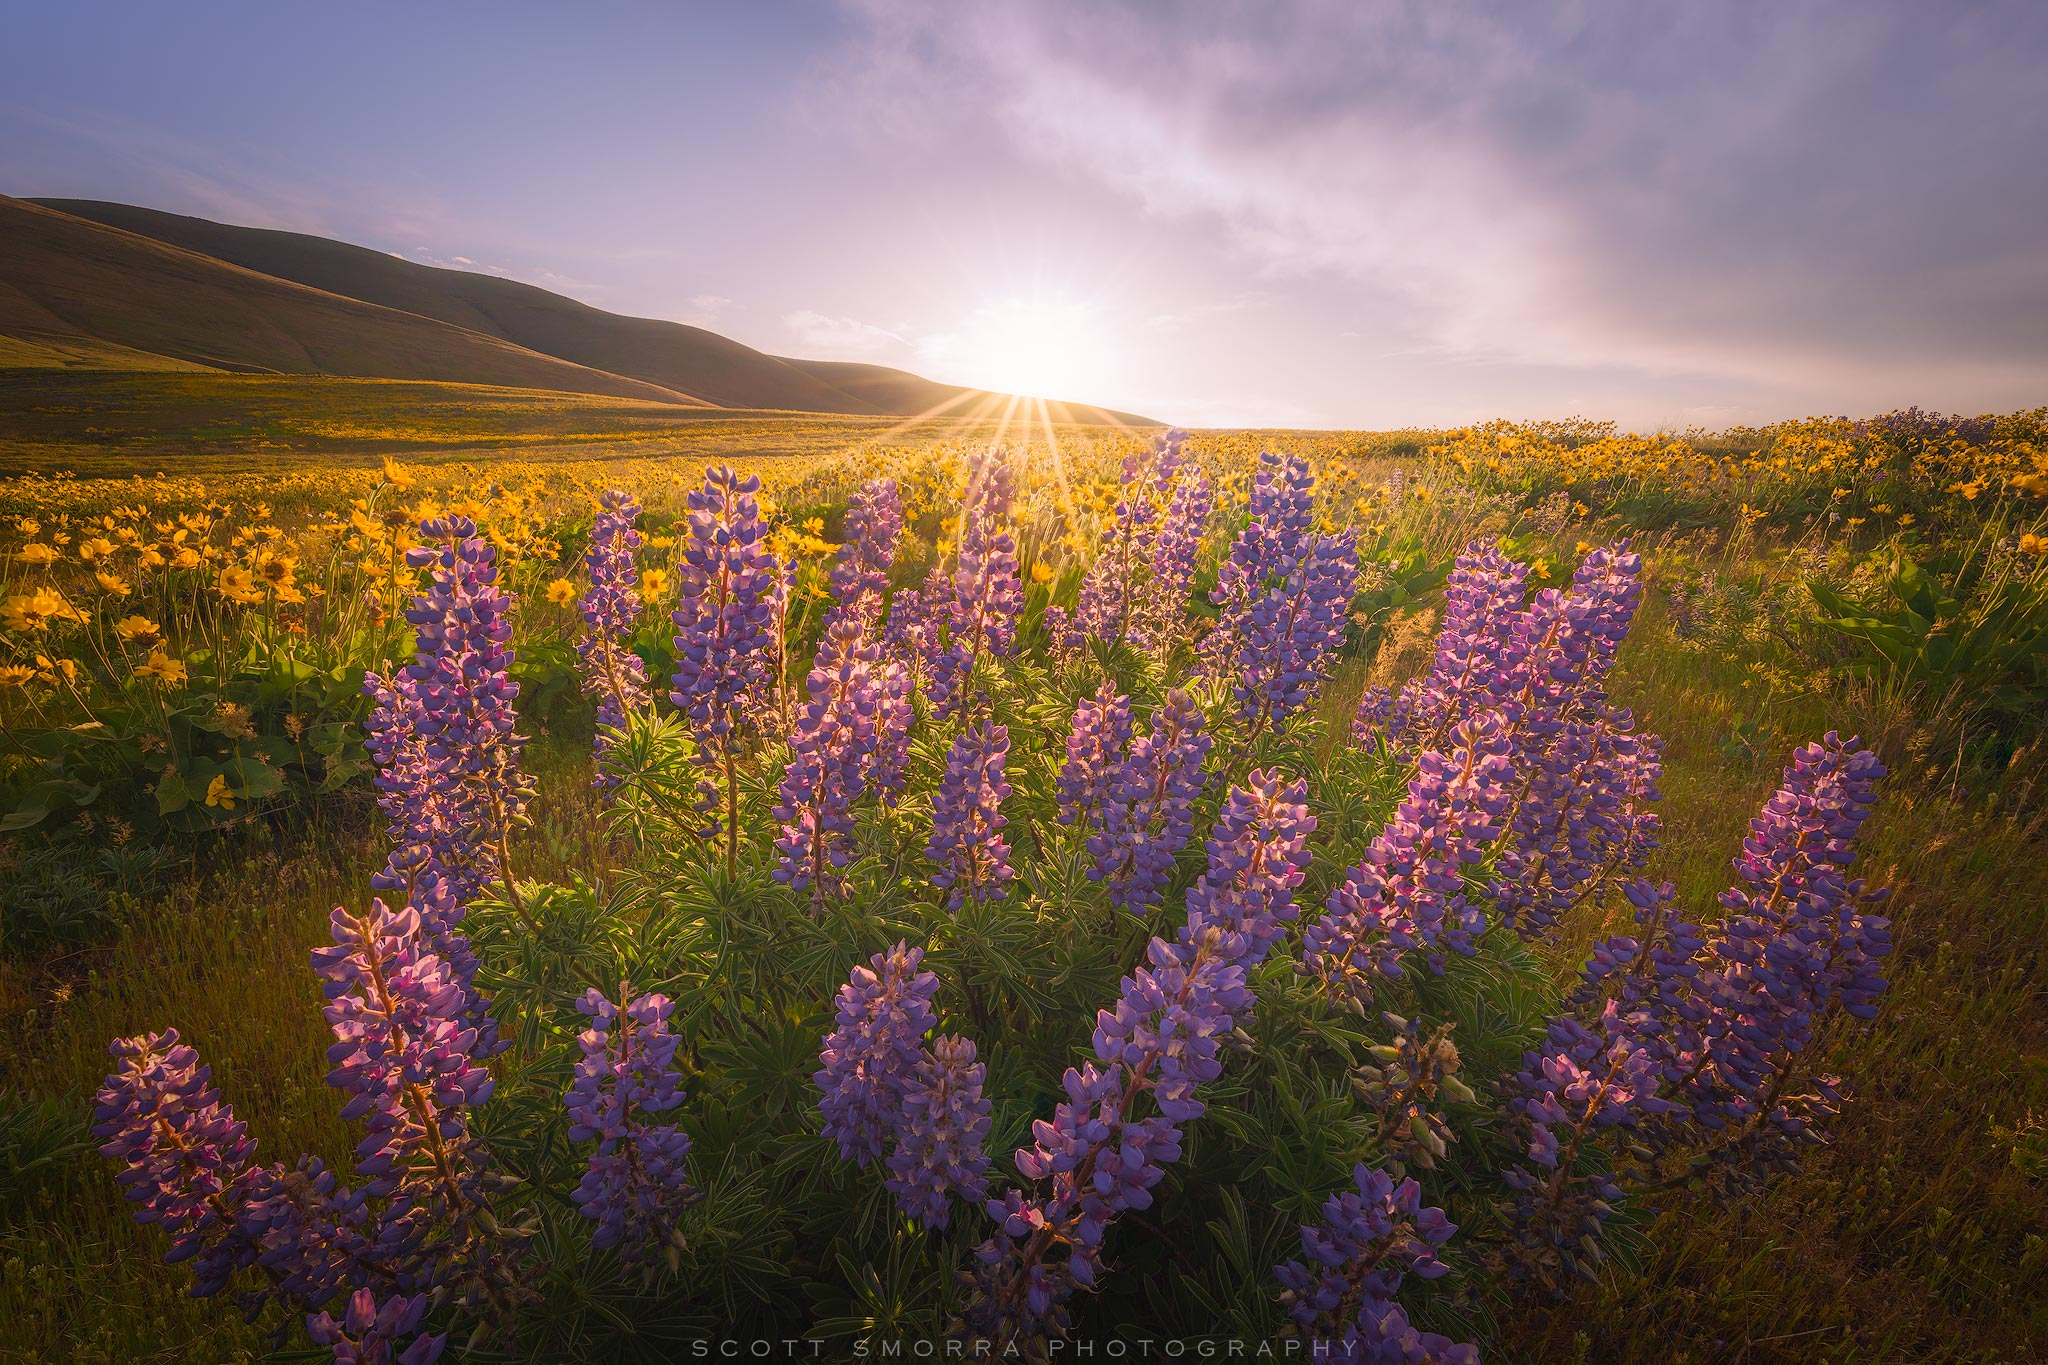 Fine Art Limited Edition of 100 - A sunrise view from the wildflower fields of Columbia Hills State Park, Washington. The wildflowers...